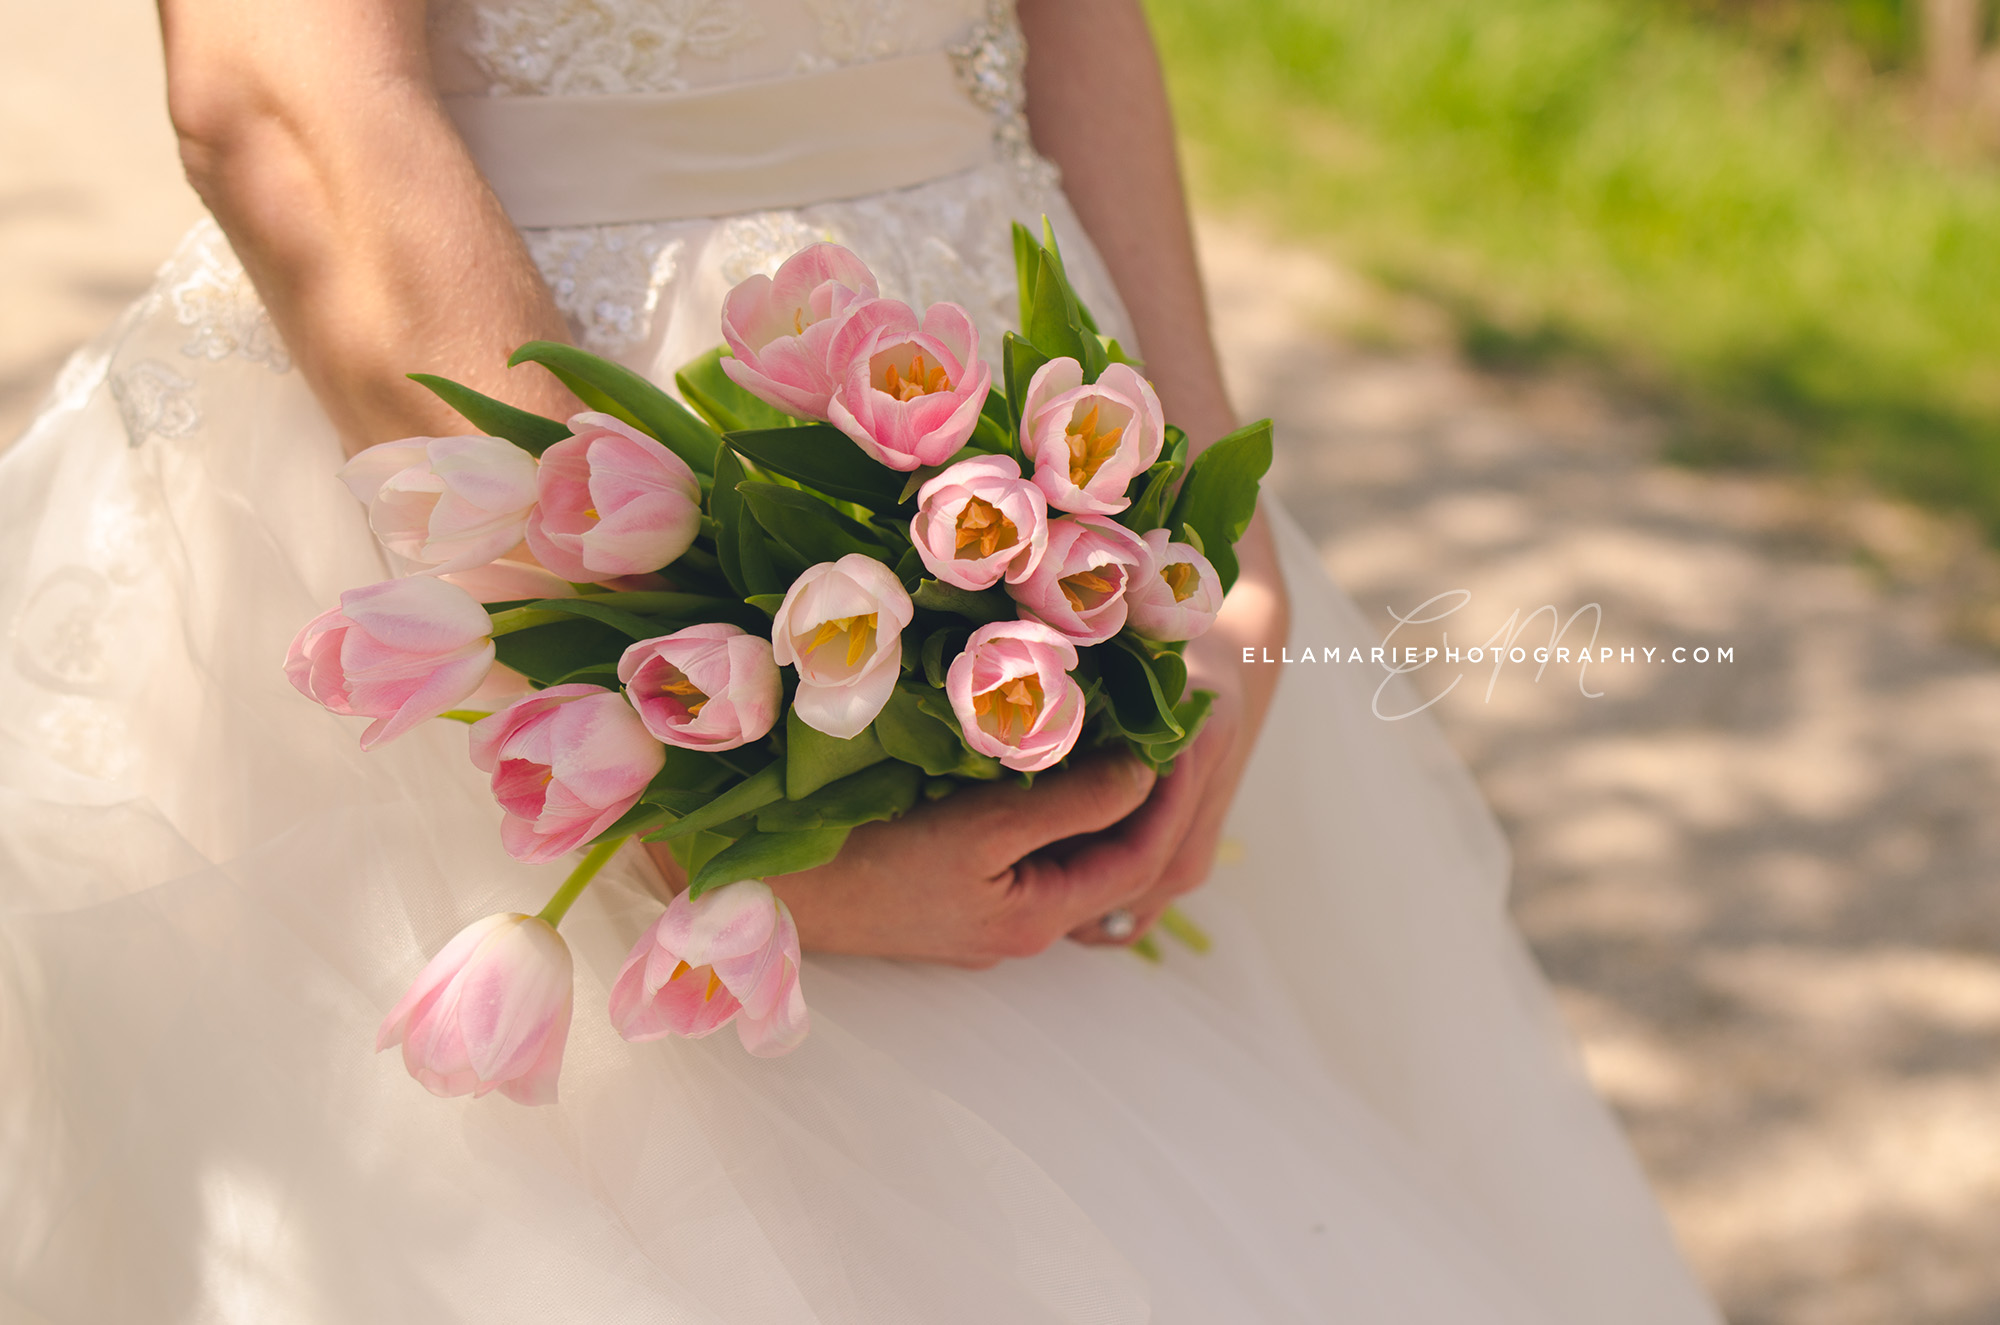 EllaMariePhotography_wedding_Baden_ON_New_Hamburg_Stratford_Waterloo_Kitchener_Guelph_Cambridge_Listowel_photographer_photography_03.jpg